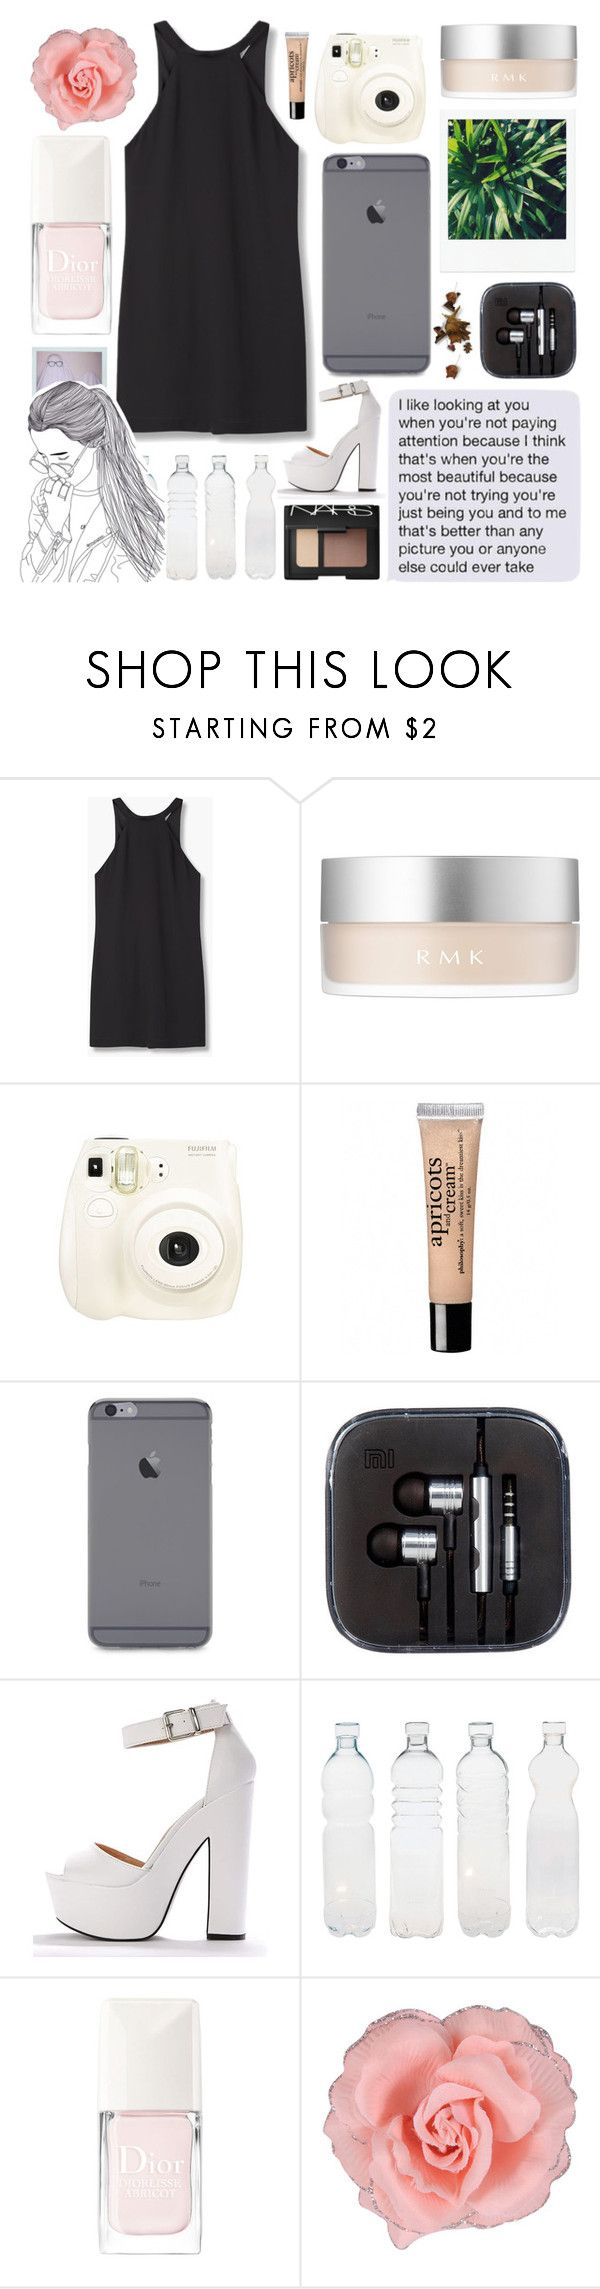 """""""~she's sixteen and sad as so many are~"""" by miss-constellation-of-tears ❤ liked on Polyvore featuring MANGO, RMK, Fujifilm, KEEP ME, philosophy, Seletti, NARS Cosmetics, Christian Dior, Forever 21 and missconstellationoftears"""